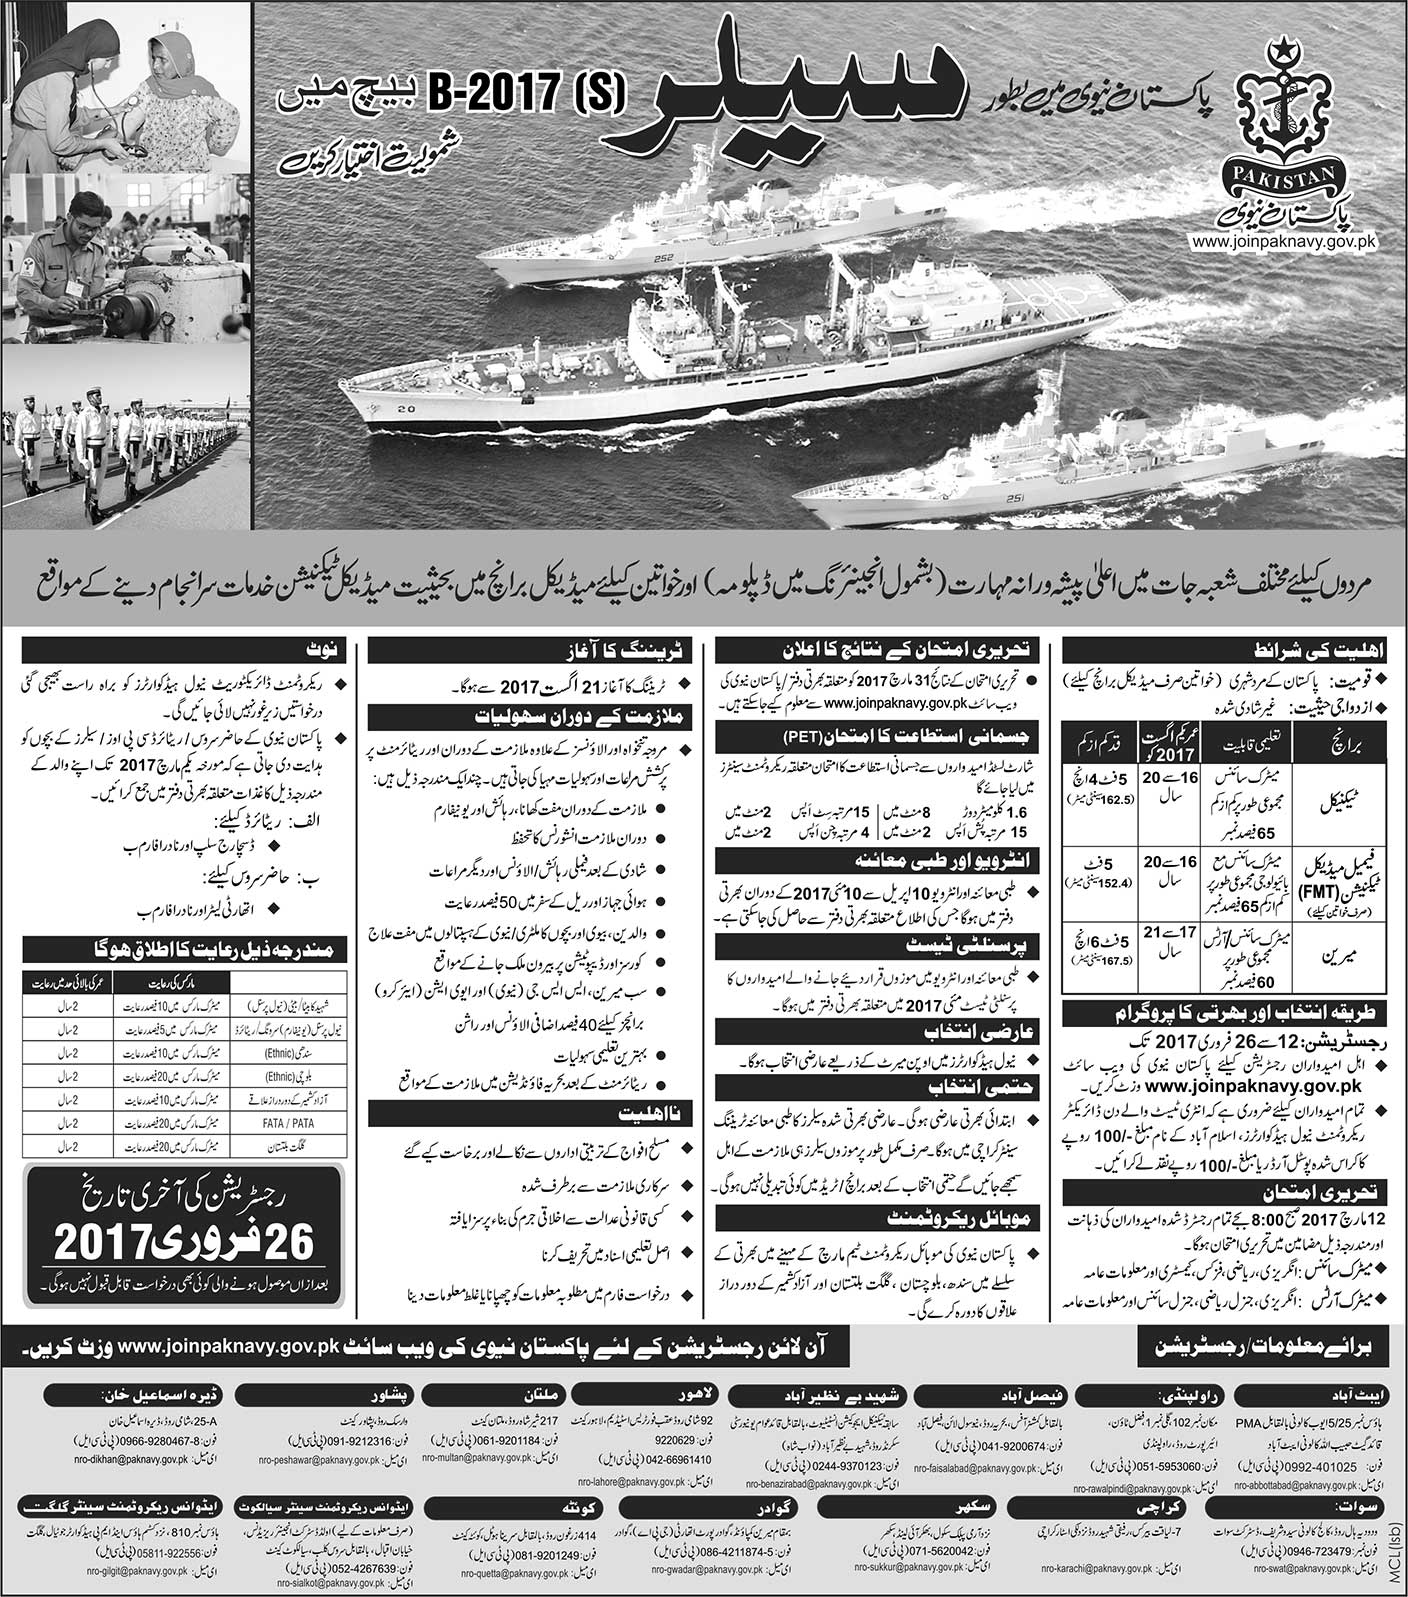 Join Pakistan Navy As Sailor B-2017 Batch S Online Registration, Eligibility